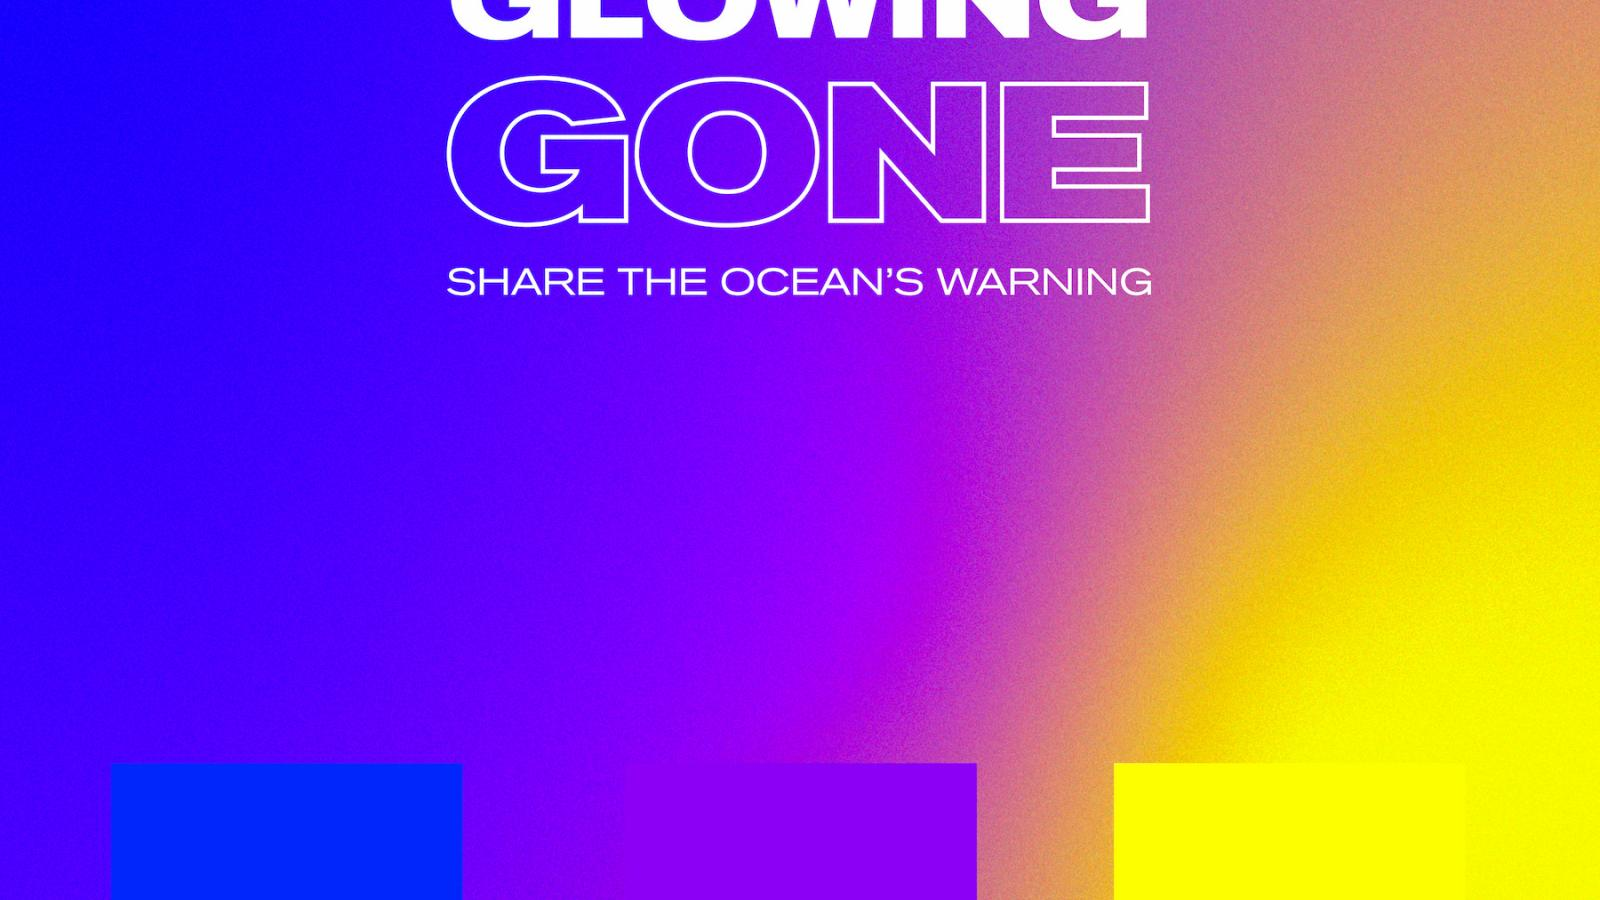 Glowing, Glowing, Gone - Raising awareness to save coral reefs